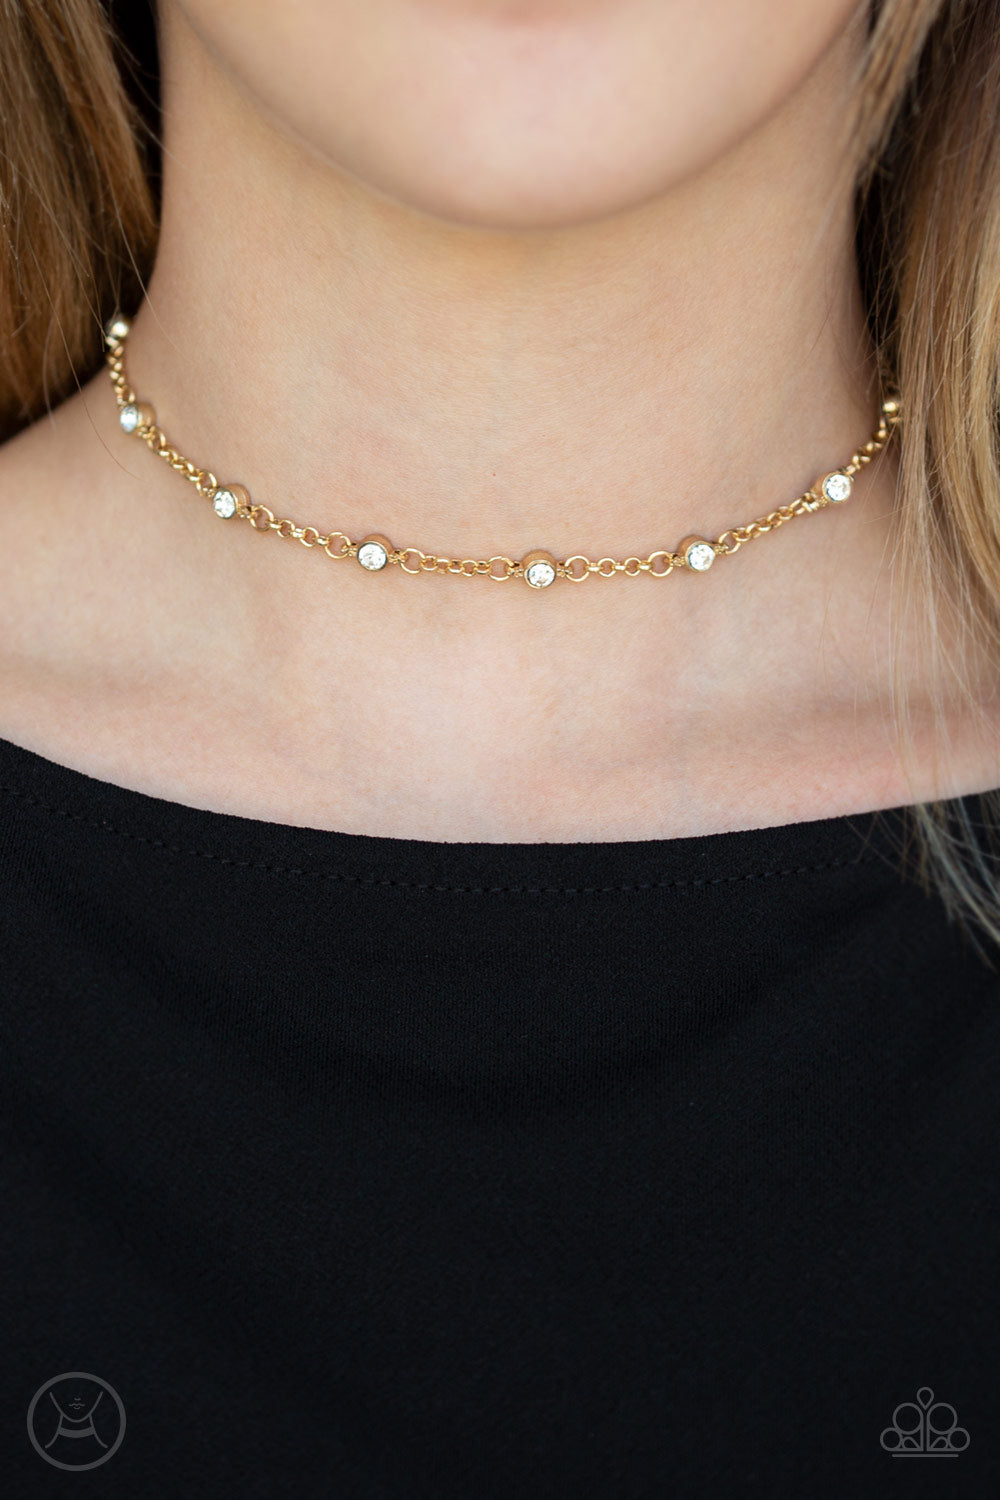 Paparazzi Accessories - Stunningly Stunning - Gold Choker